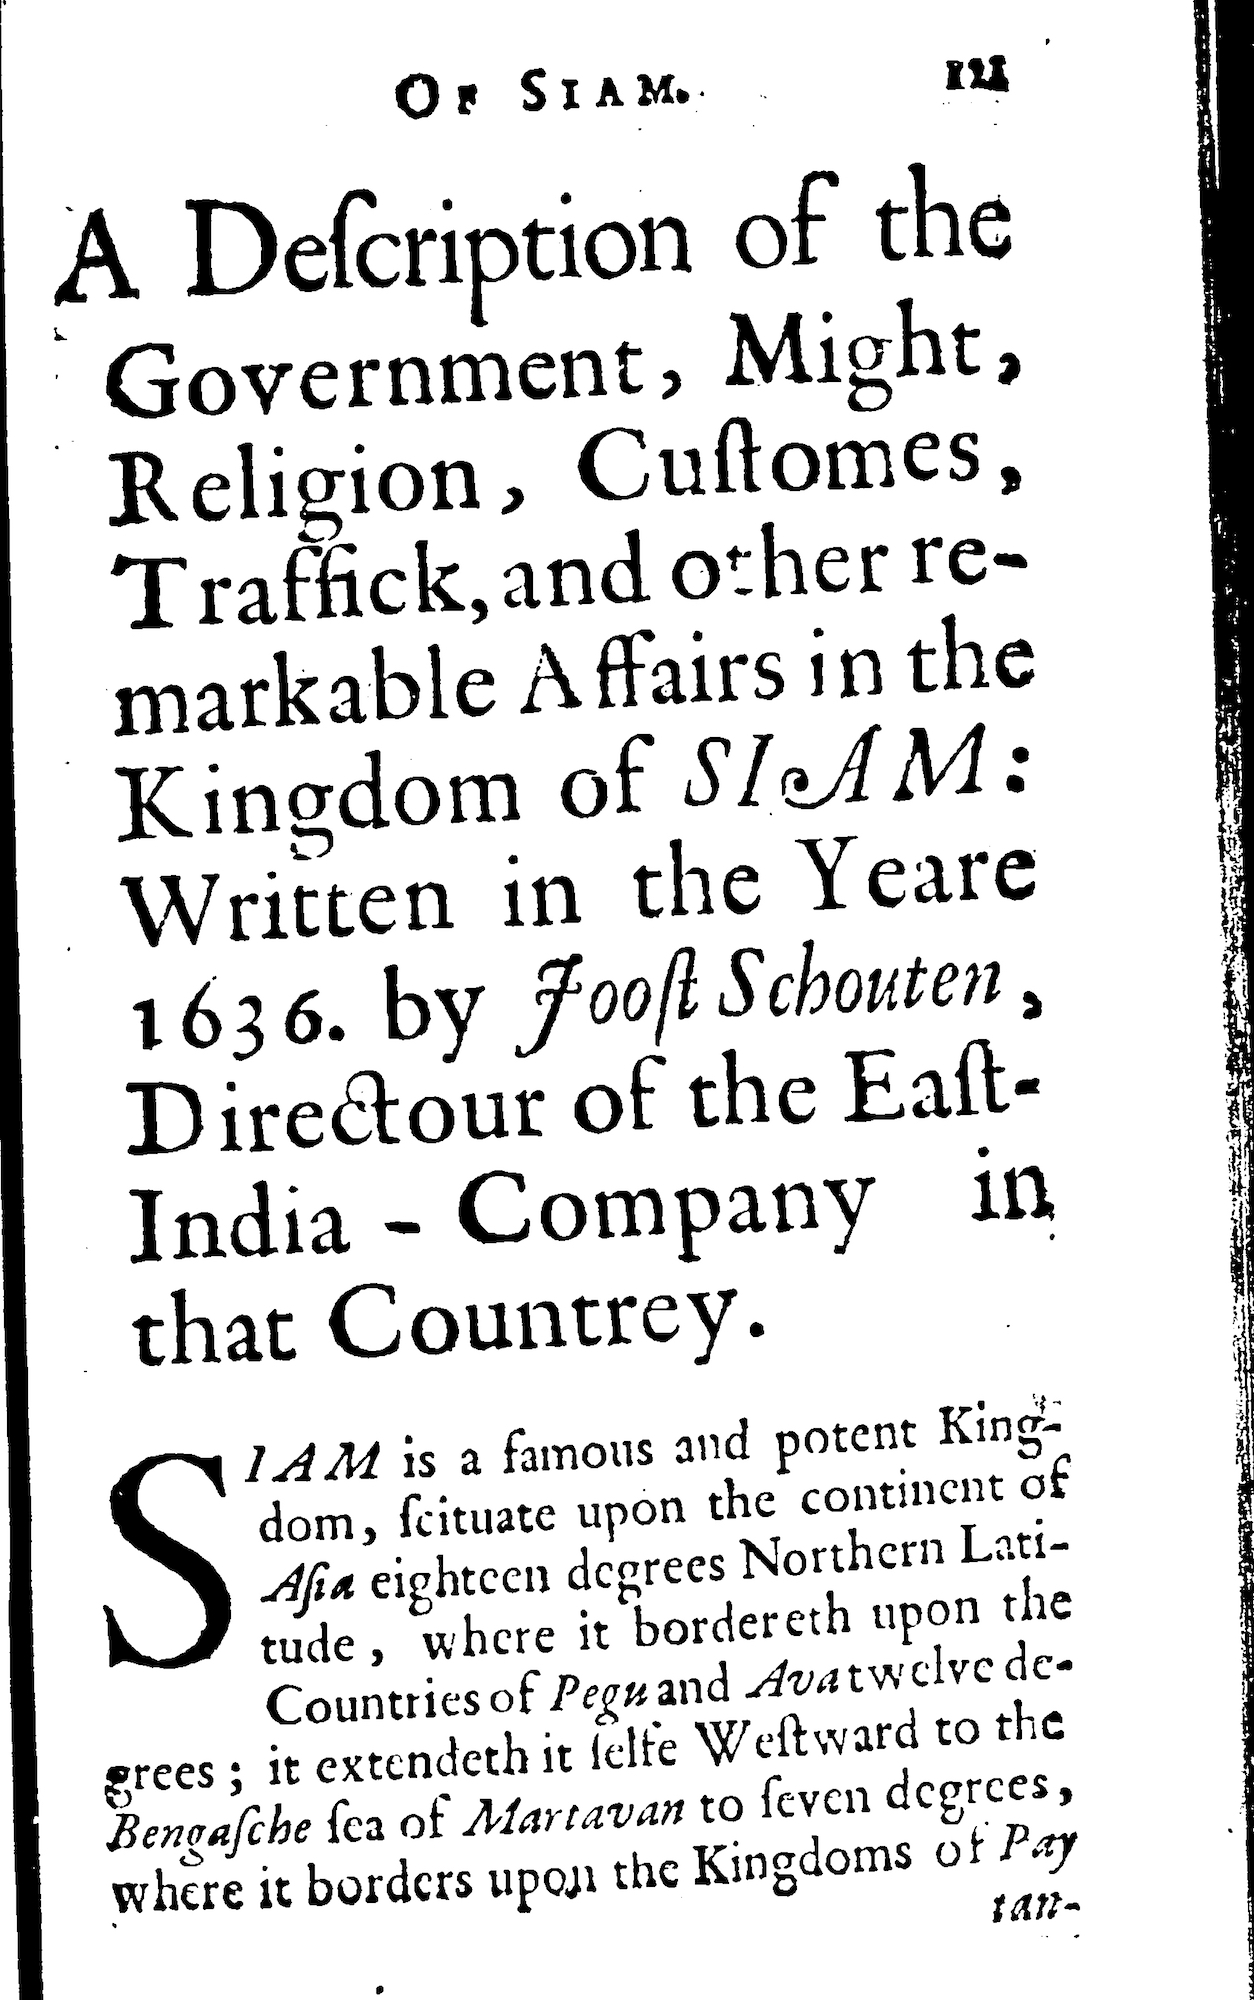 First page of Joost Schouten's description of Siam